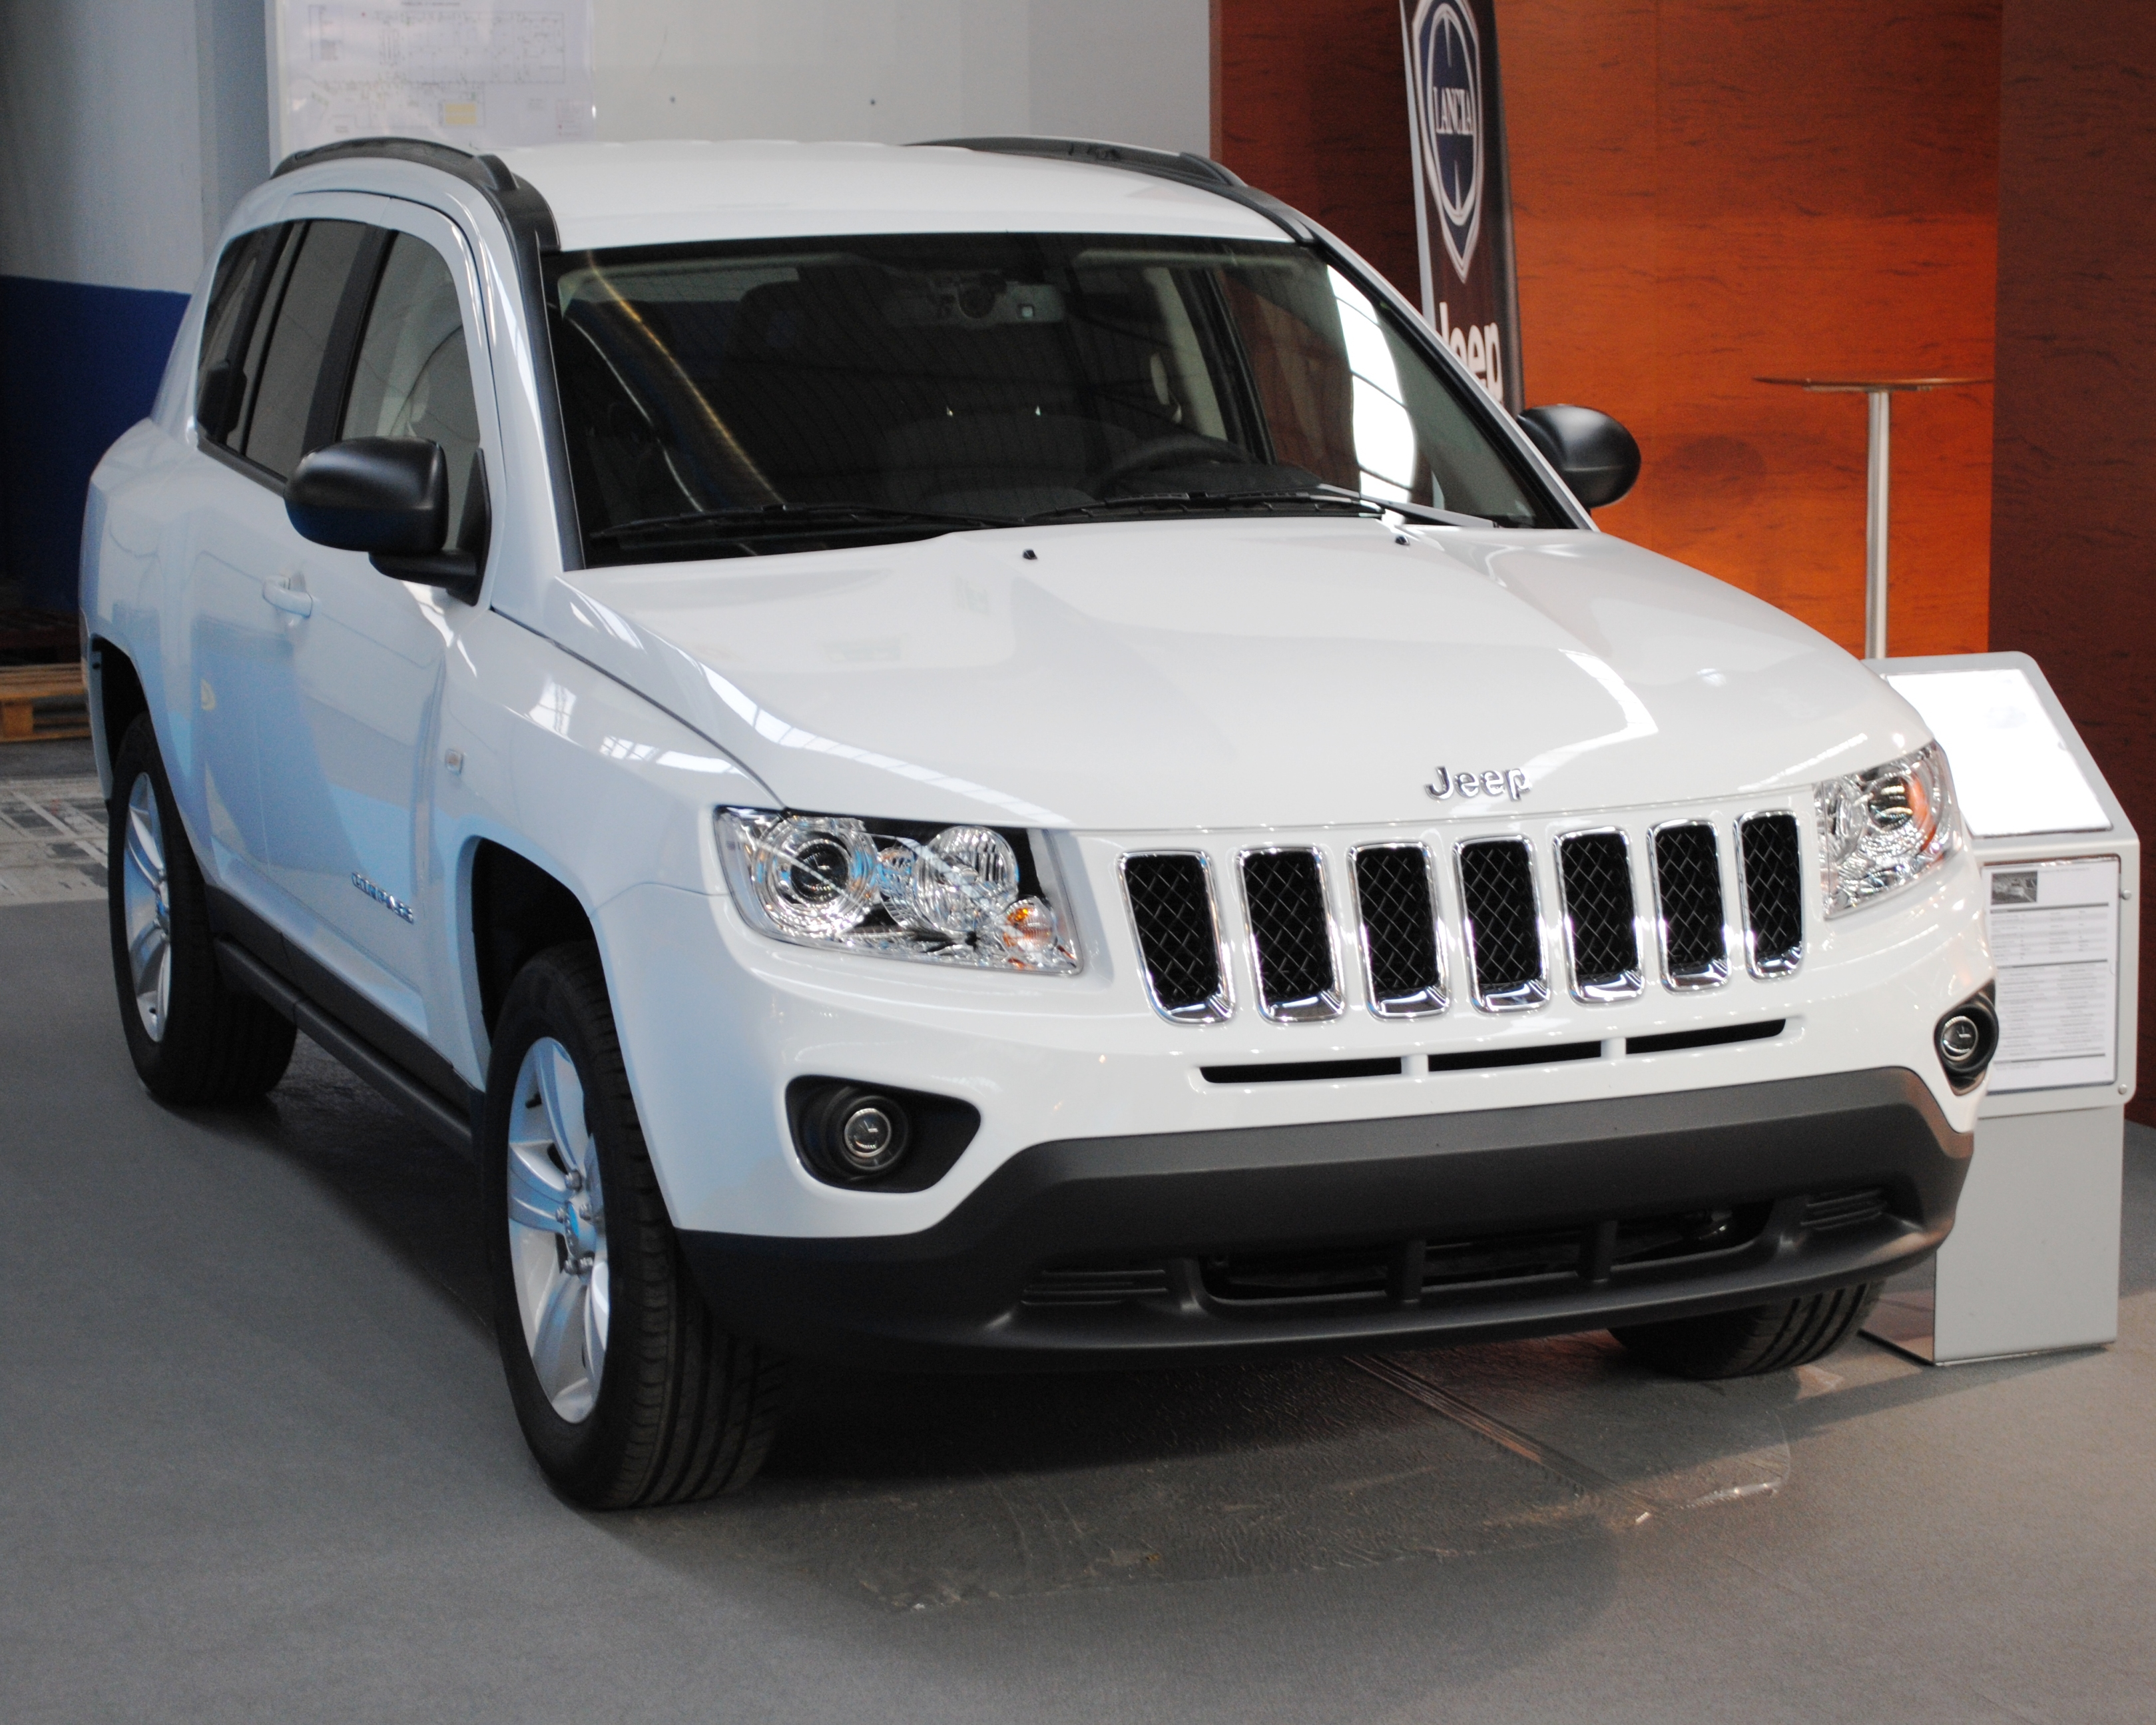 file jeep compass 2012 ifevi jpg wikimedia commons. Black Bedroom Furniture Sets. Home Design Ideas